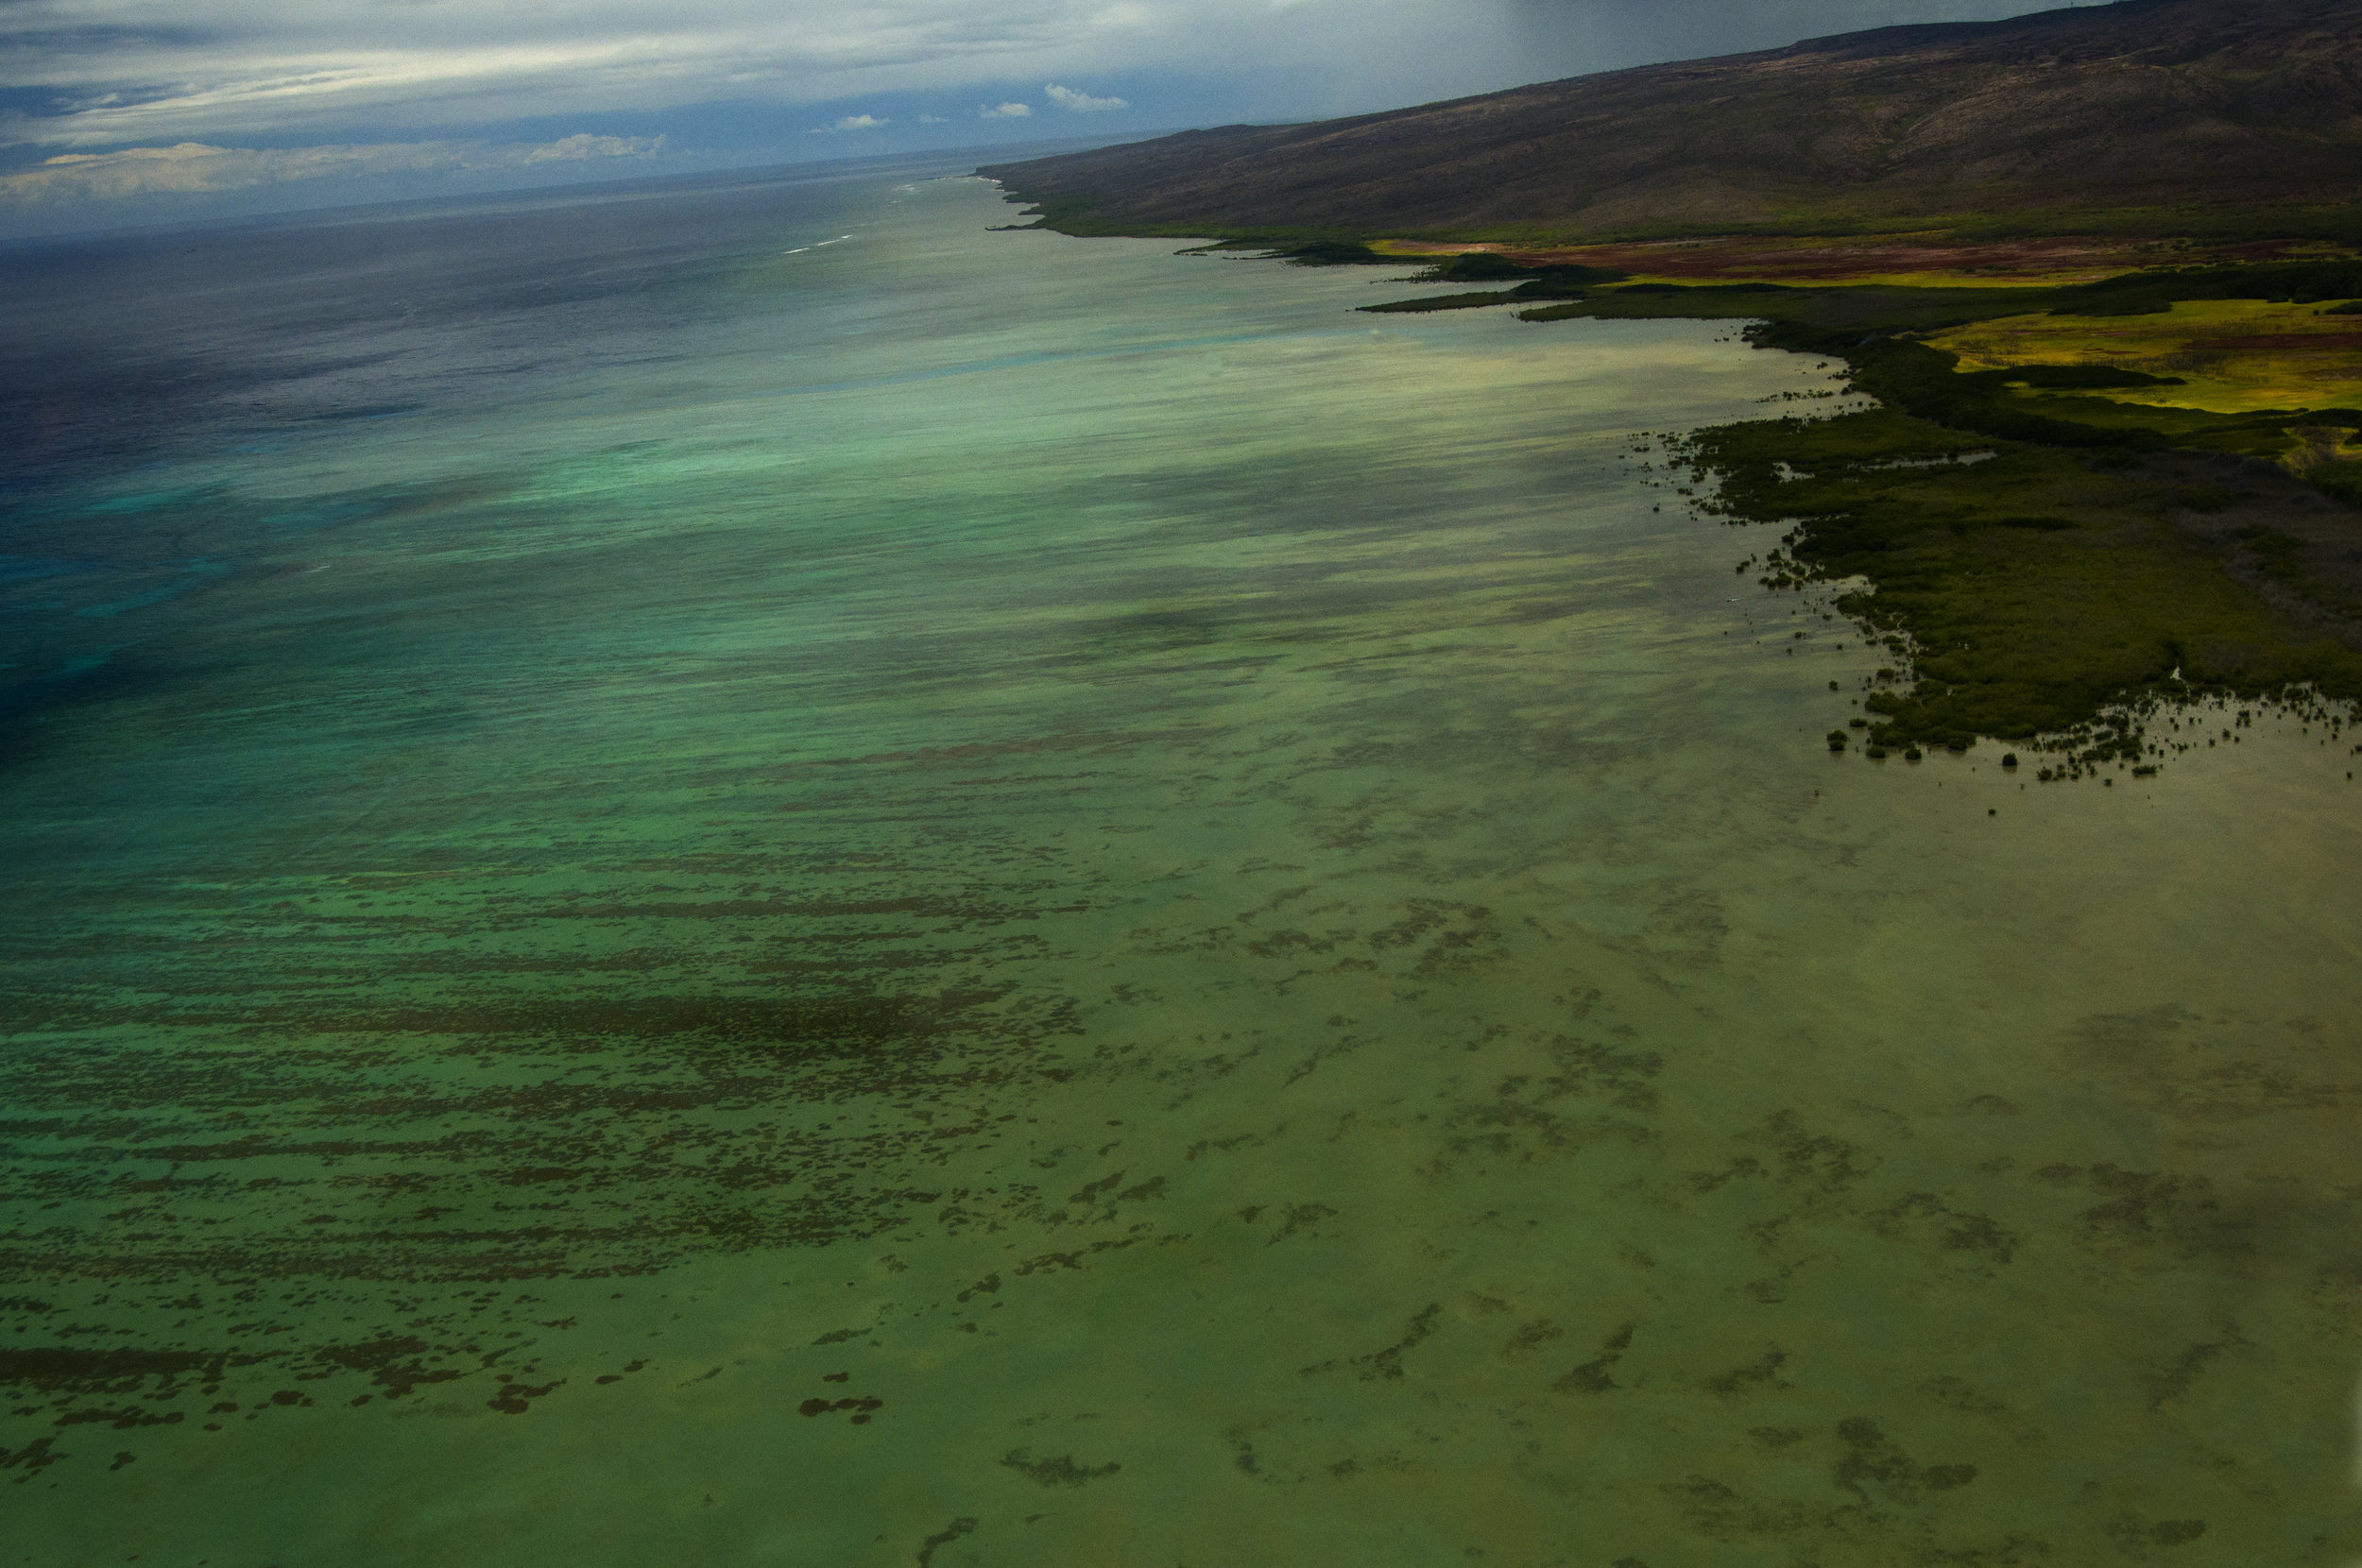 Ariel view of fringing reef and the flats created by the reef, where bonefish are targeted.